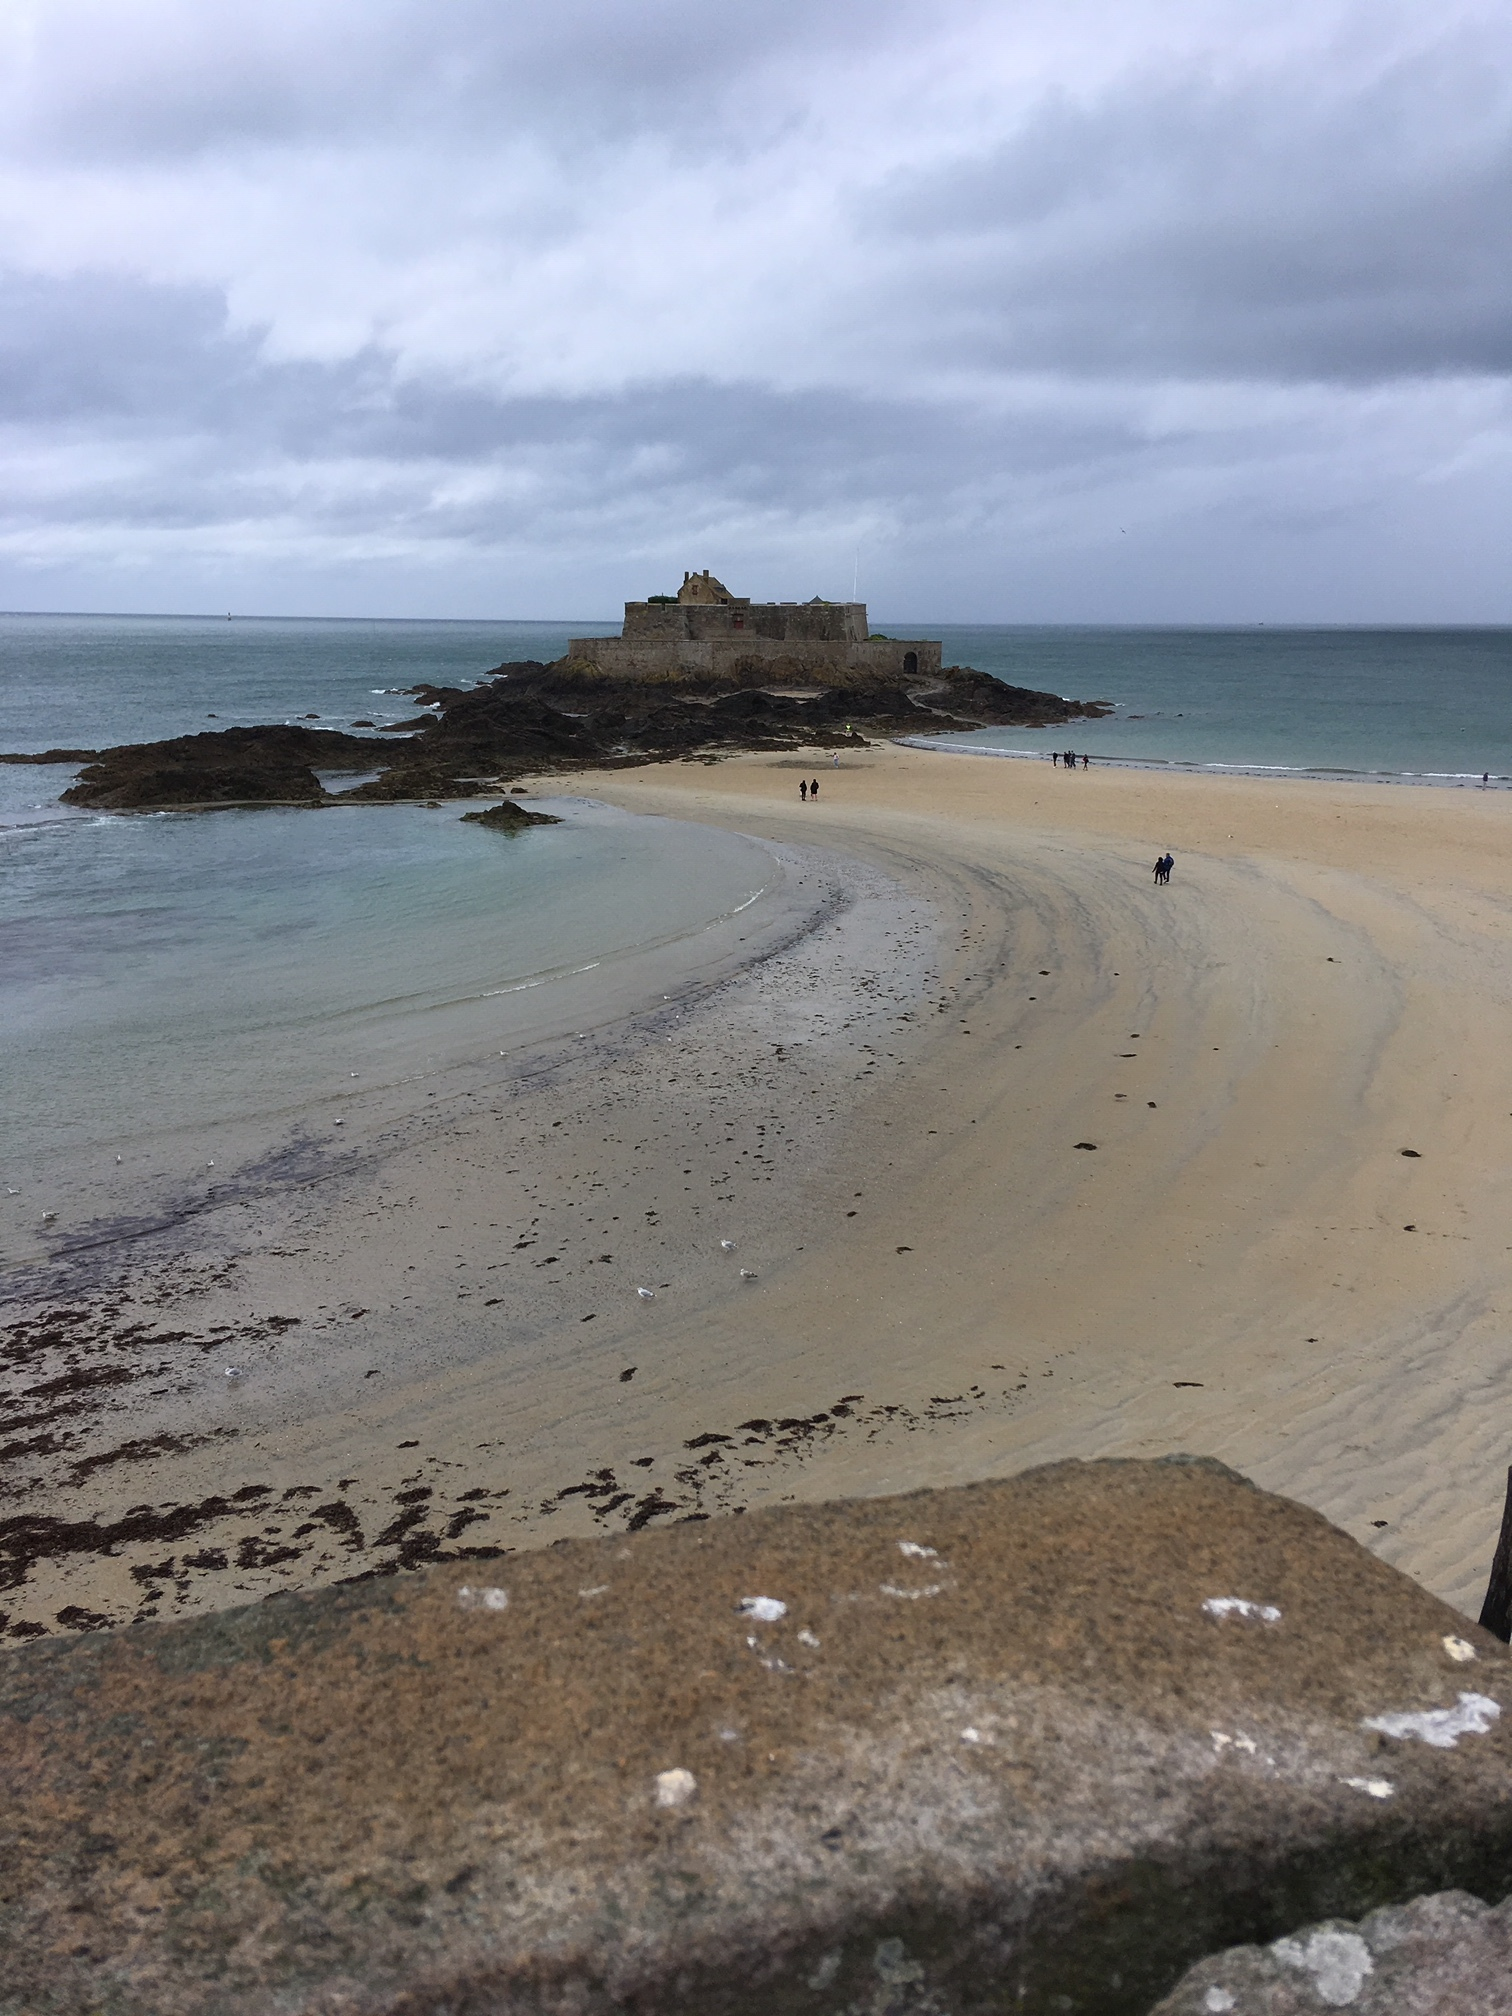 Fort National - St Malo - only accessible at low tide.